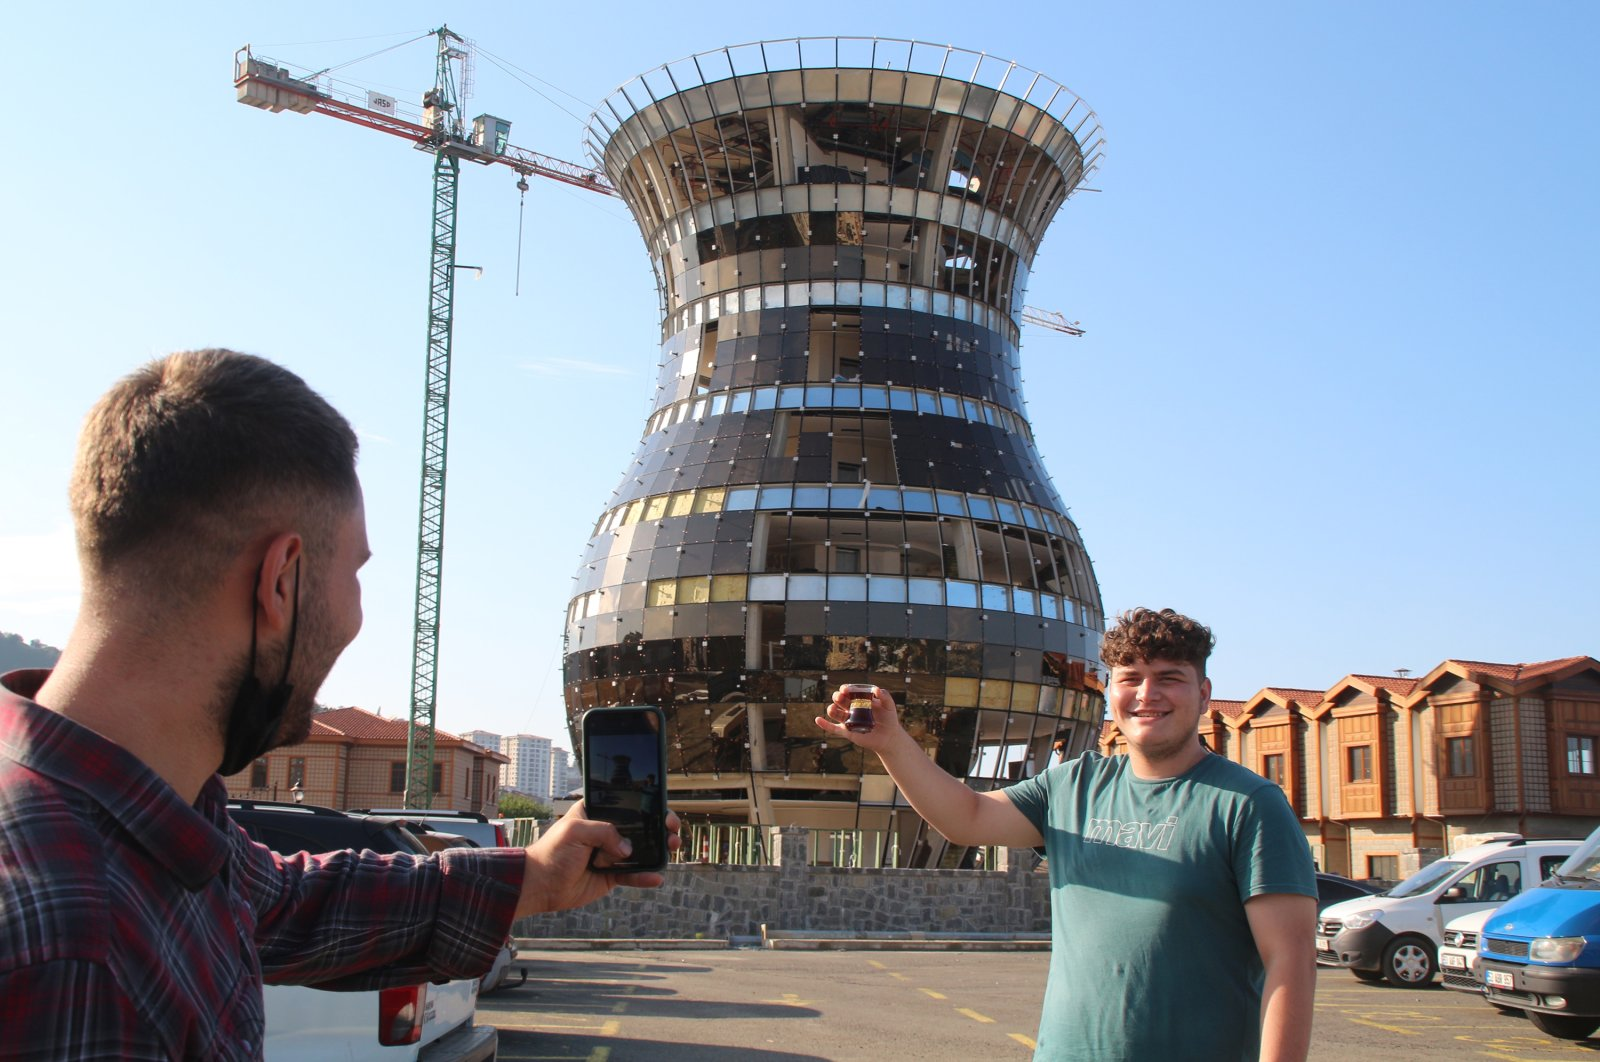 People take photos in front of the tea-glass building, in Rize, northern Turkey, Oct. 10, 2021. (DHA Photo)